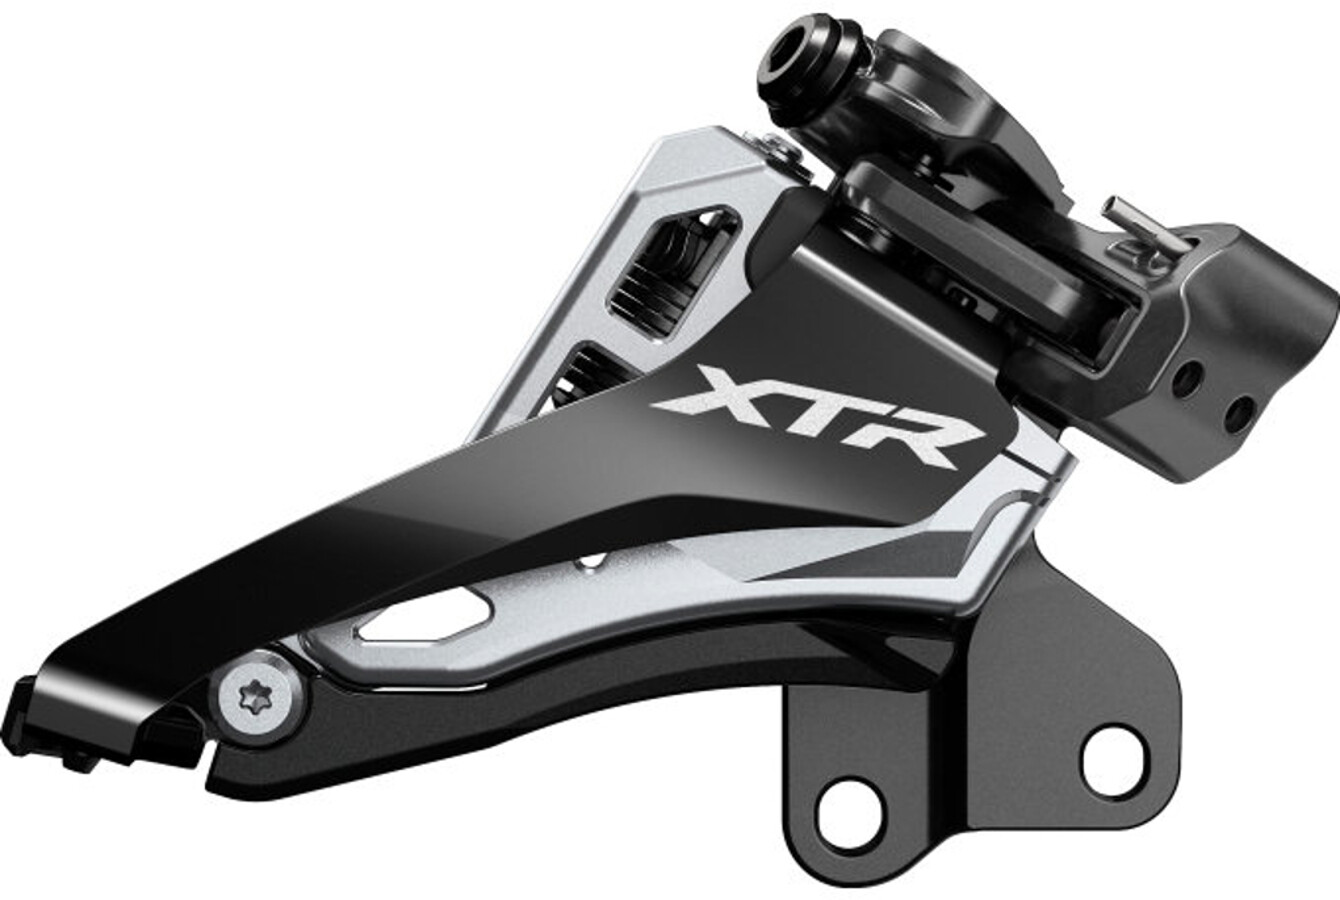 Shimano XTR FD-M9100 Forskifter 2x12 Side Swing Front Pull Direct-Mount lav (E-Type) (2019) | Front derailleur